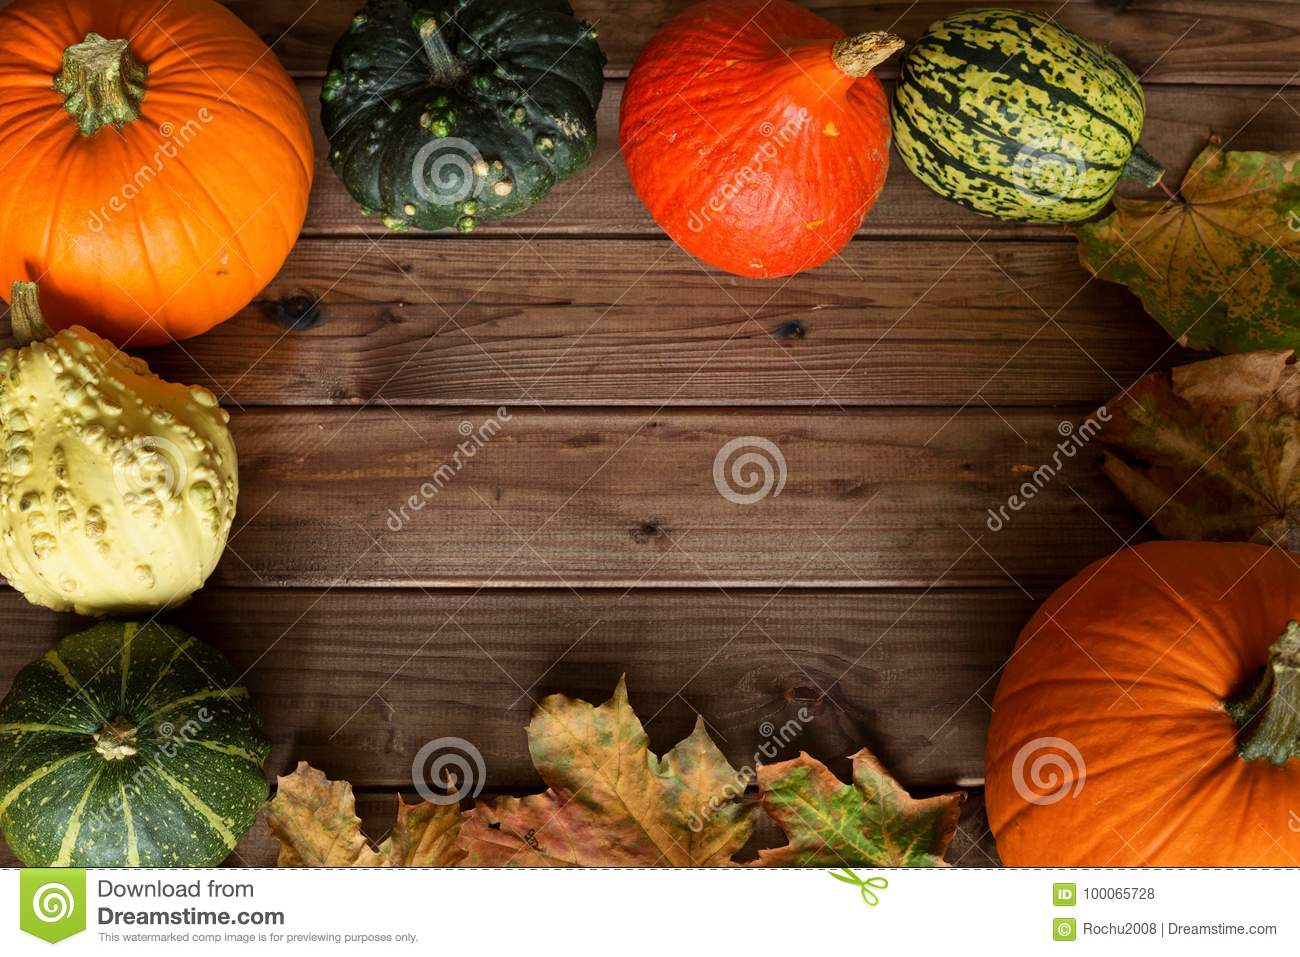 Pumpkins Different Types Good For Eat And Decorative With Place For